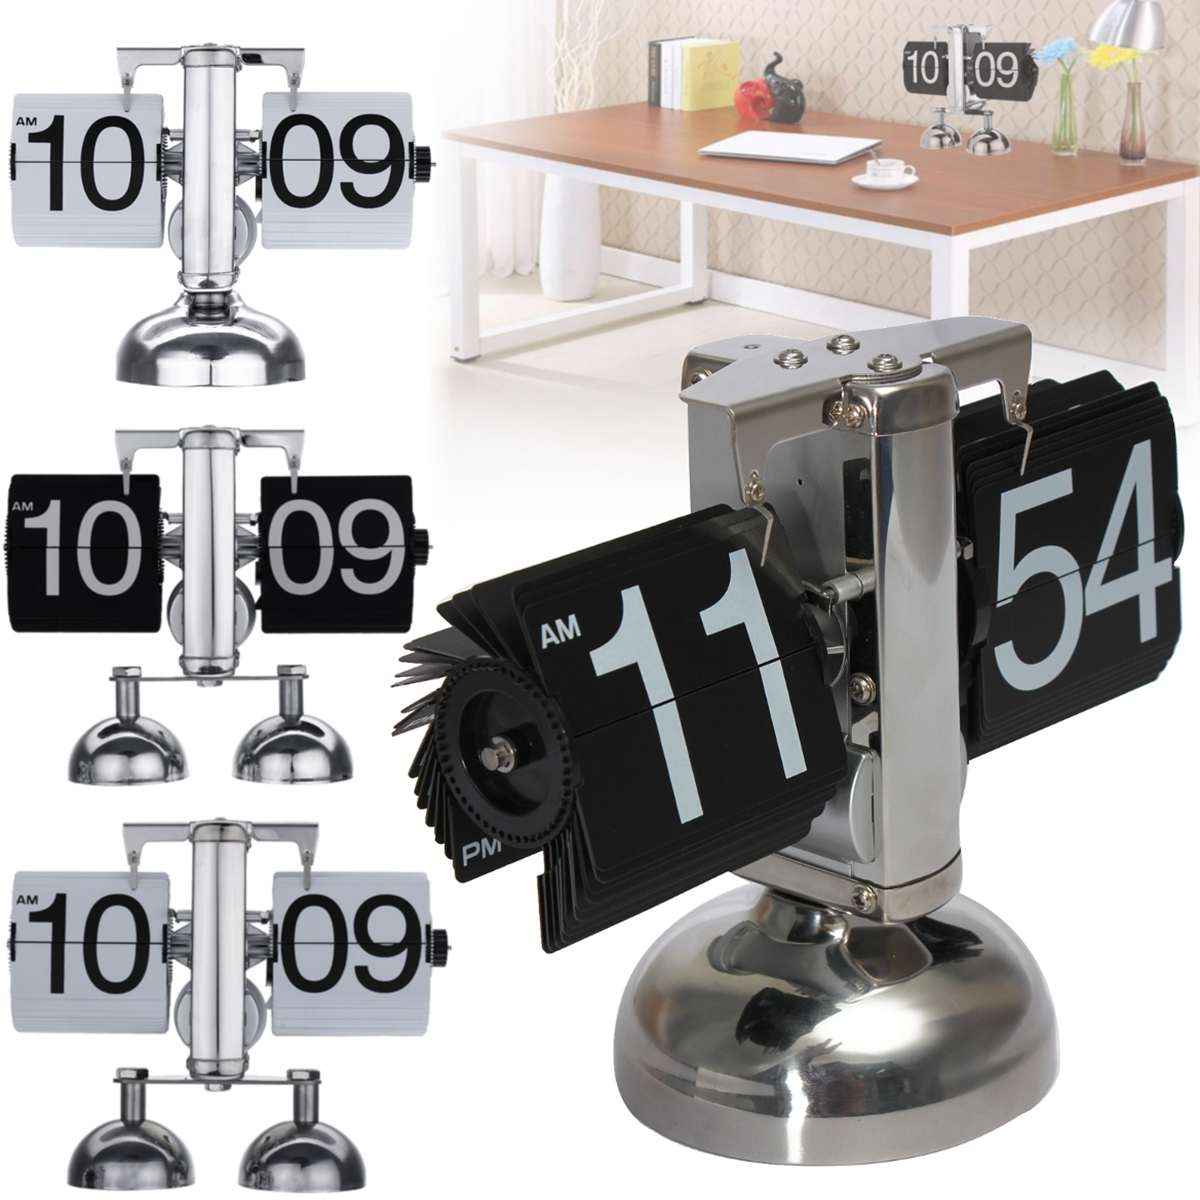 Digital Auto Flip Clock Retro Vintage Style Down Metal Single Double Stand Table Clock Unique automatic flip design Quartz ClockDigital Auto Flip Clock Retro Vintage Style Down Metal Single Double Stand Table Clock Unique automatic flip design Quartz Clock